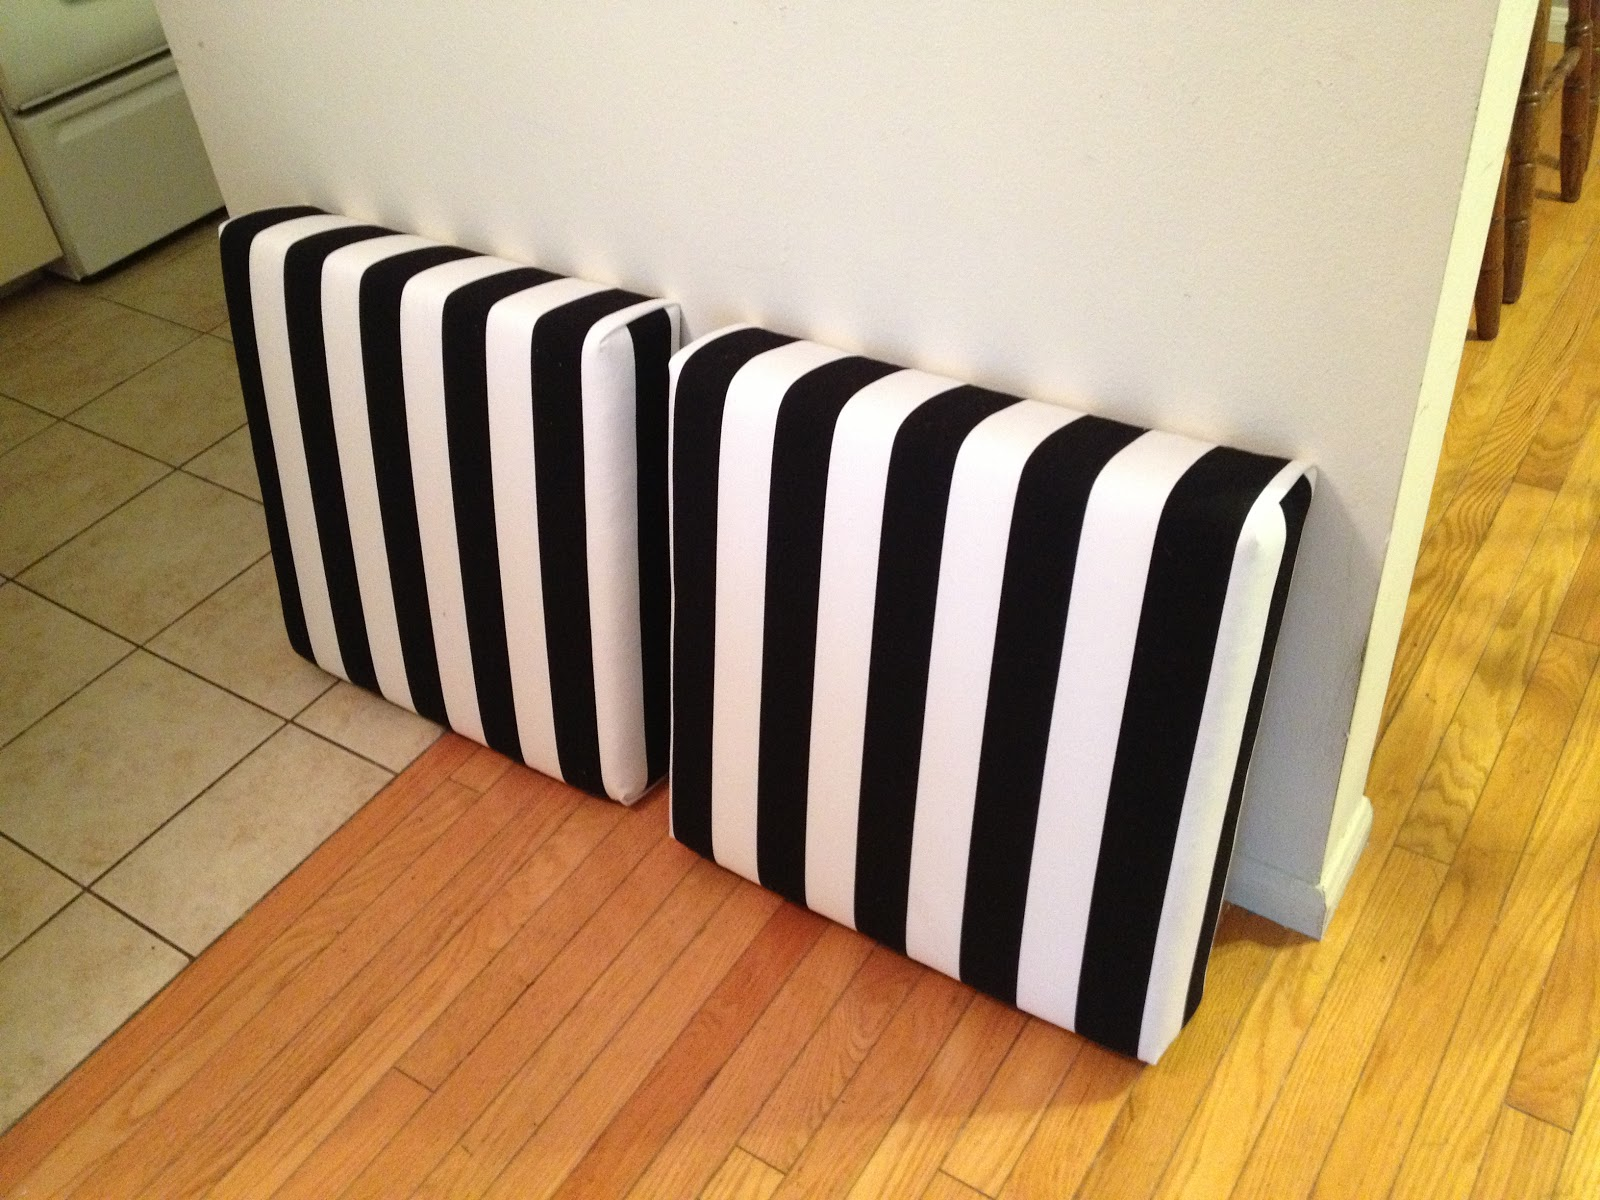 Ikea Lack Side Table DIY Upholstered Ottomans